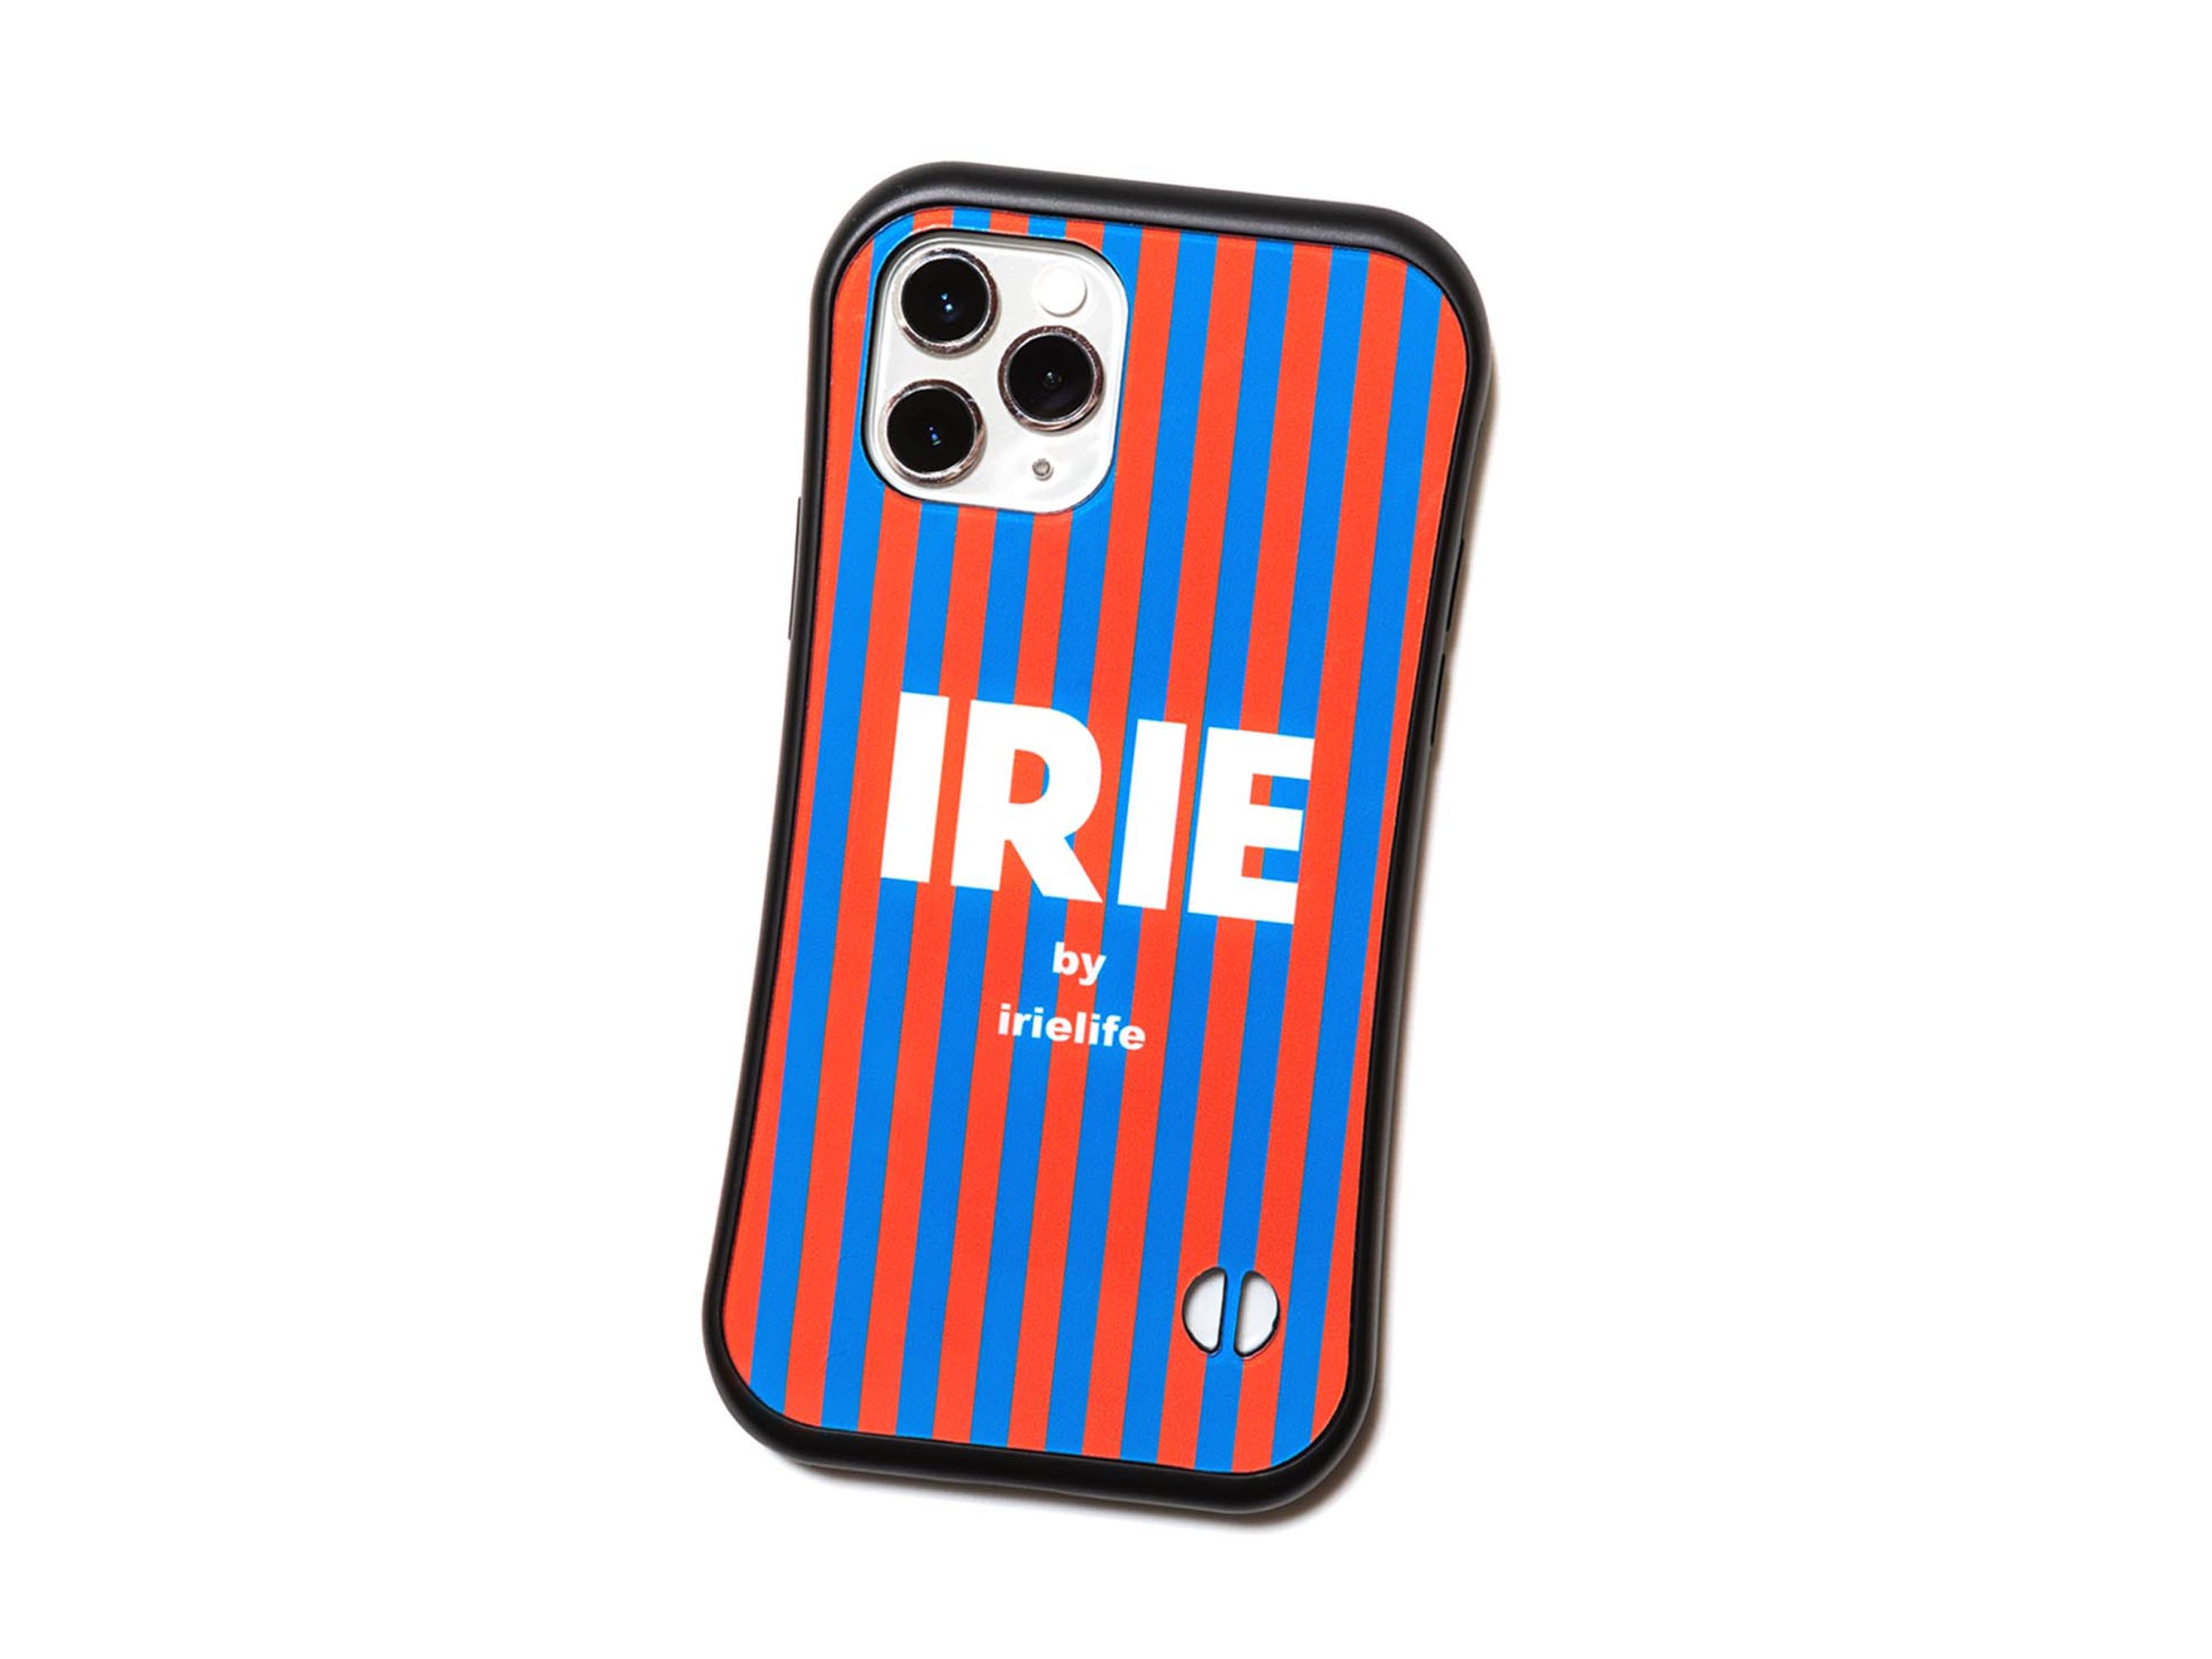 IRIE HARD iPhone CASE - IRIE by irielife